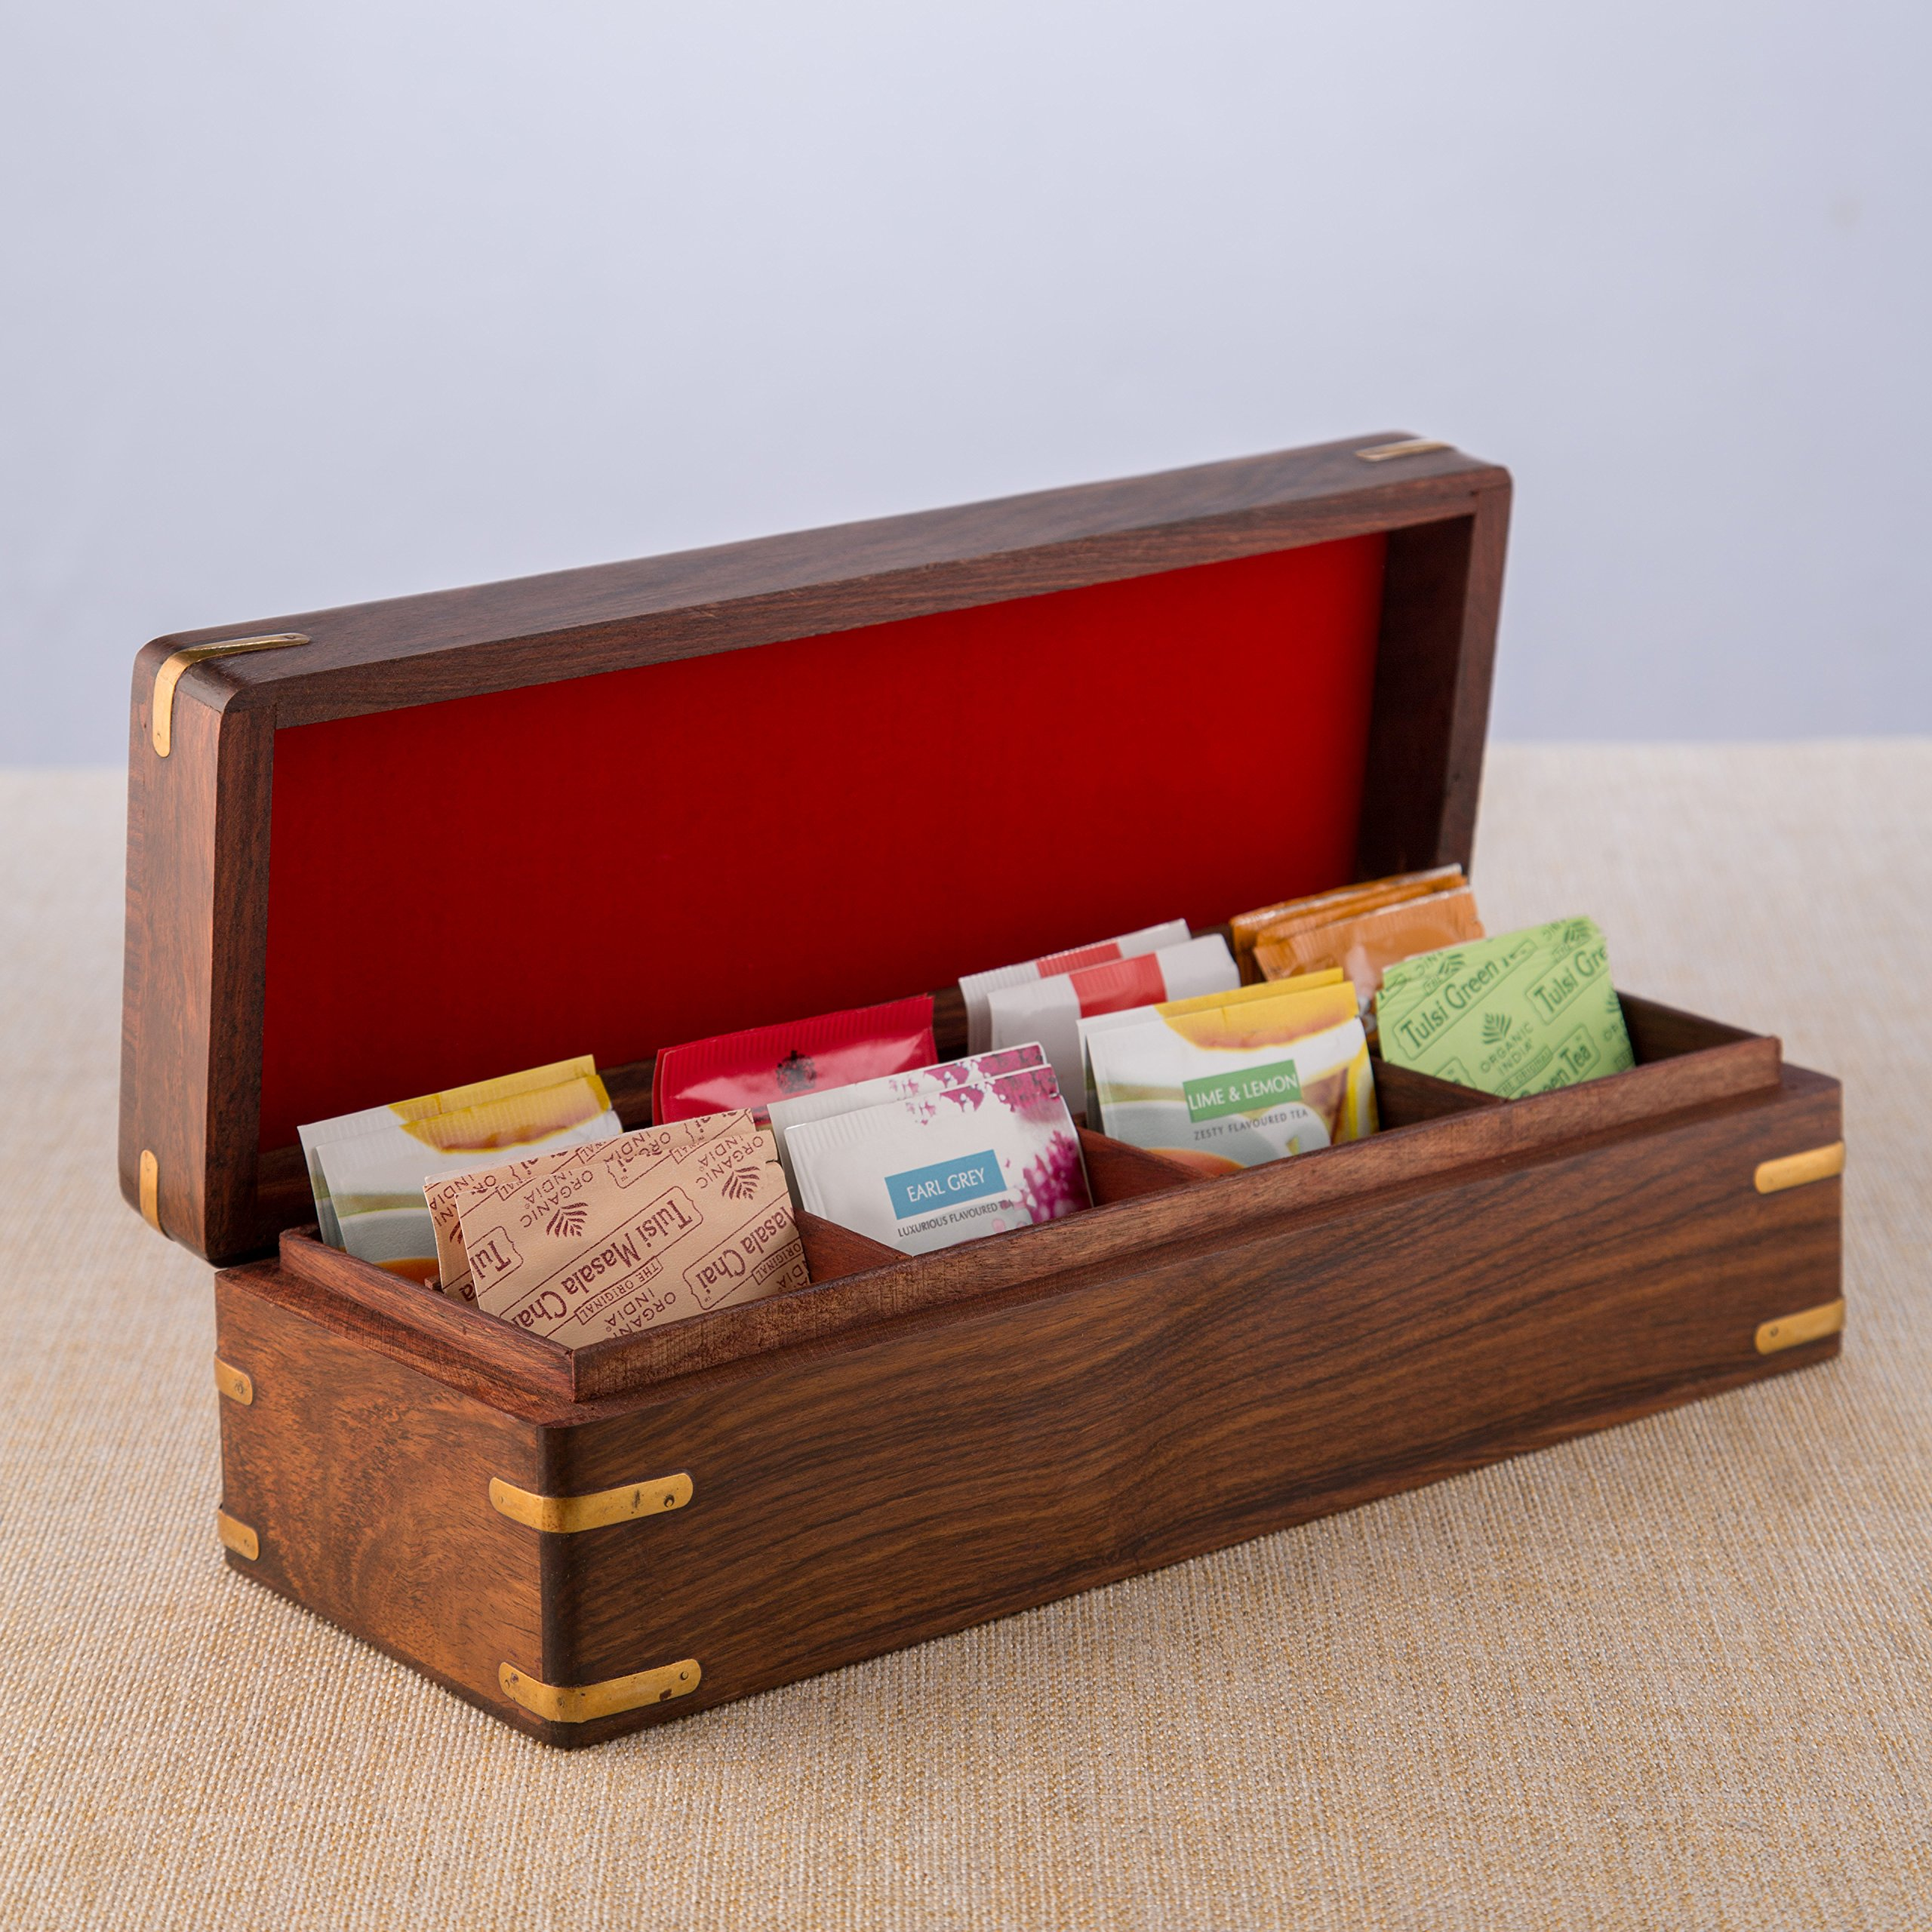 Rusticity Wood Tea Box/Spice Storage Box with Lid and 8 pockets   Handmade   (12x4.5 in)